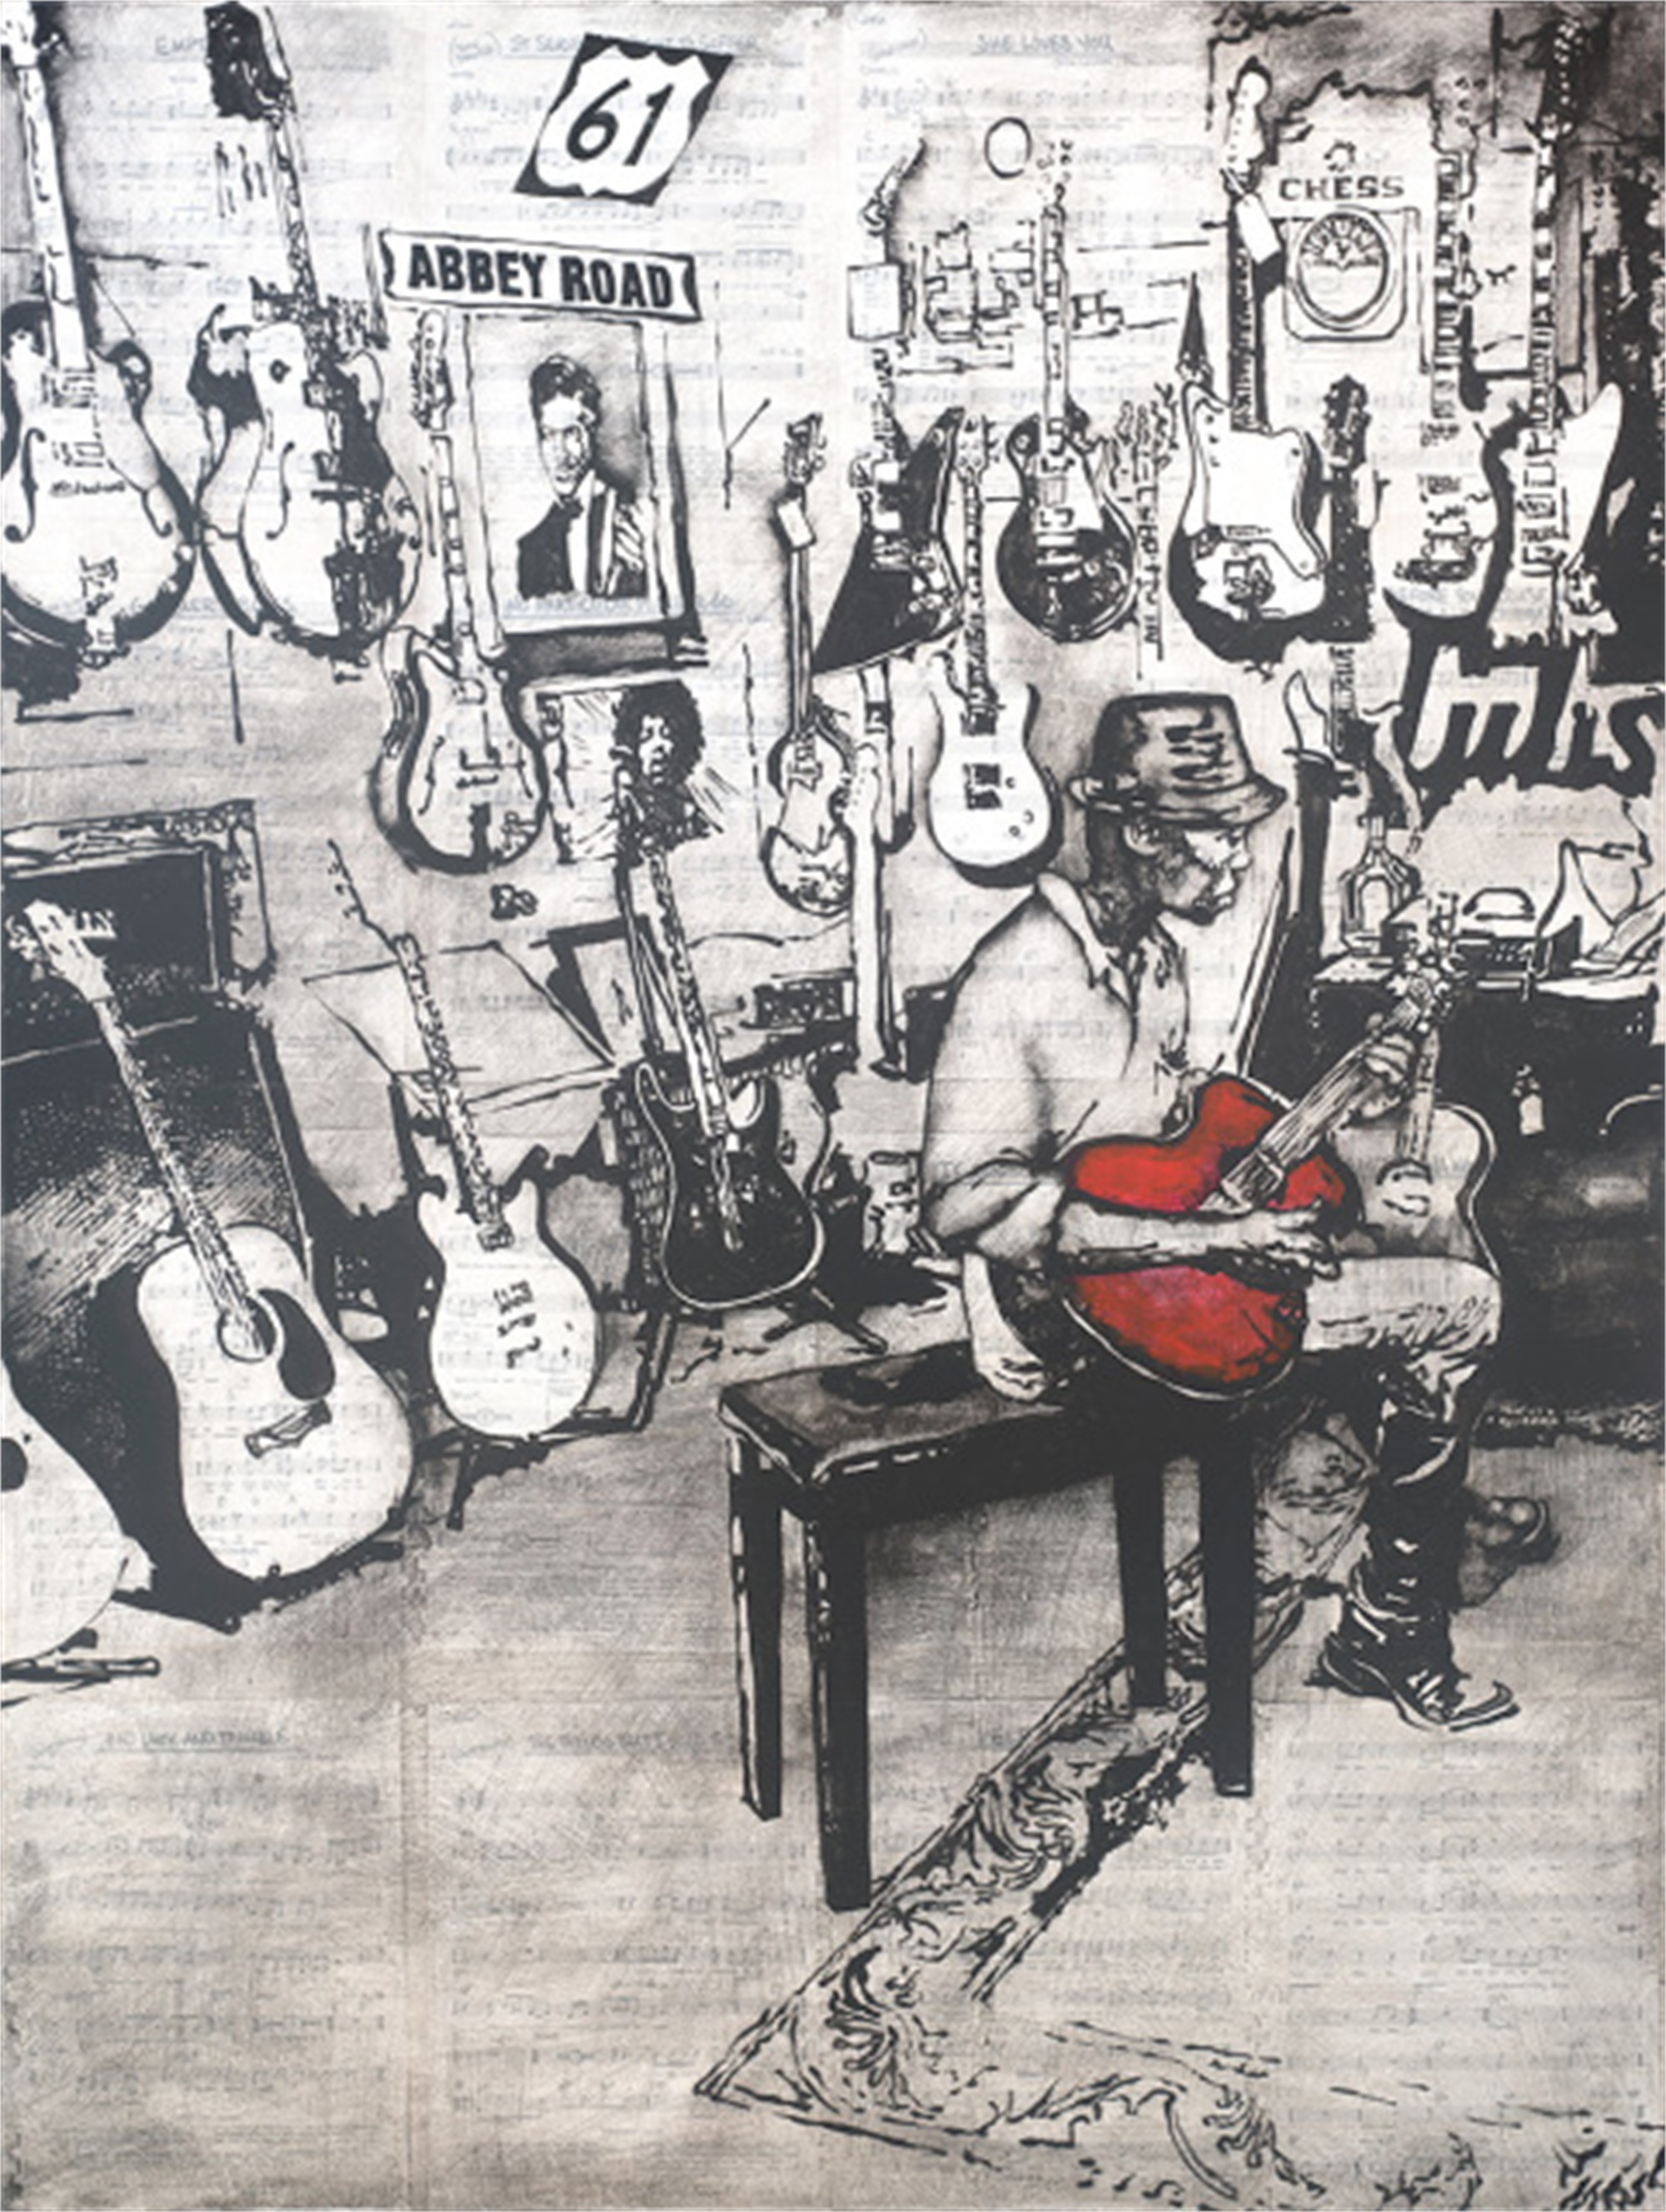 The Guitar Shop by Will Armstrong